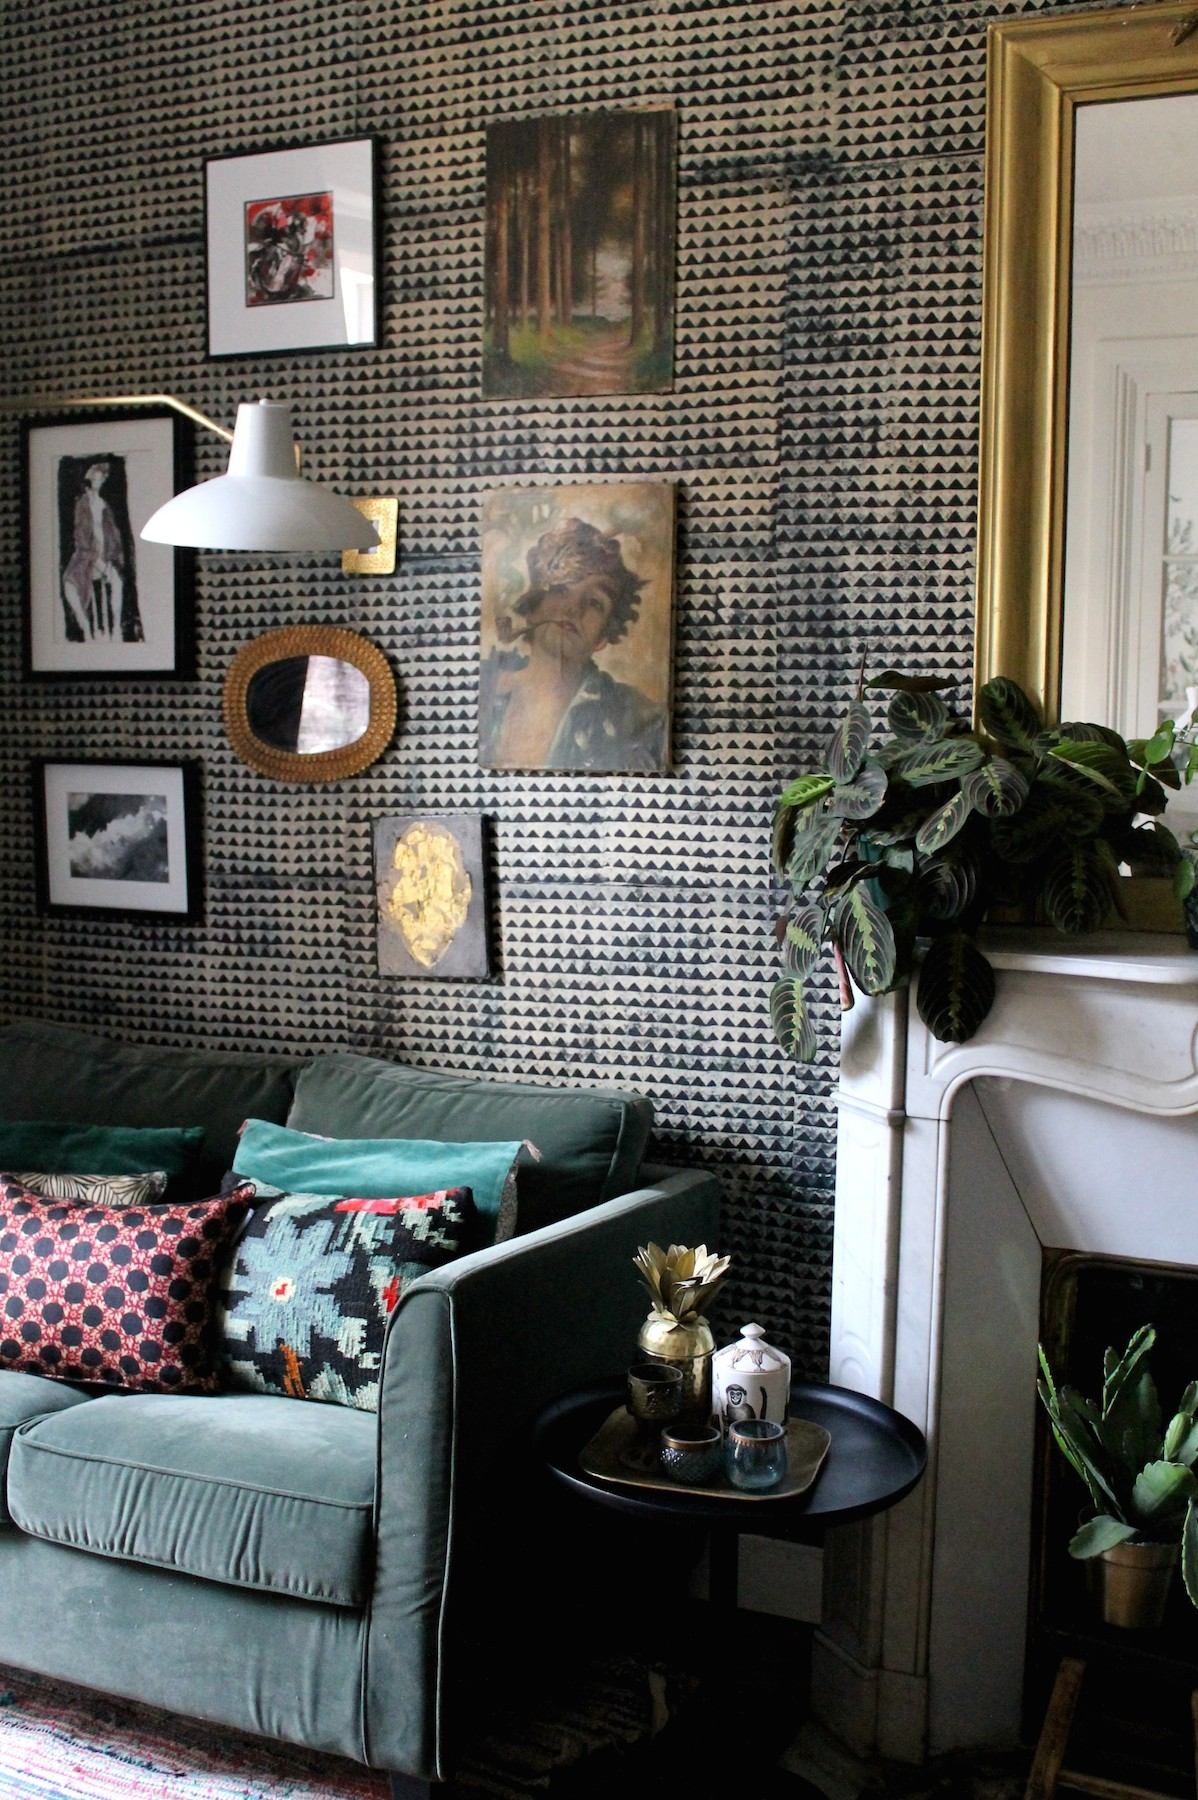 captivating jl deniot paris living room apartm | In Paris, an Apartment Drenched in Wallpaper is a Dream ...